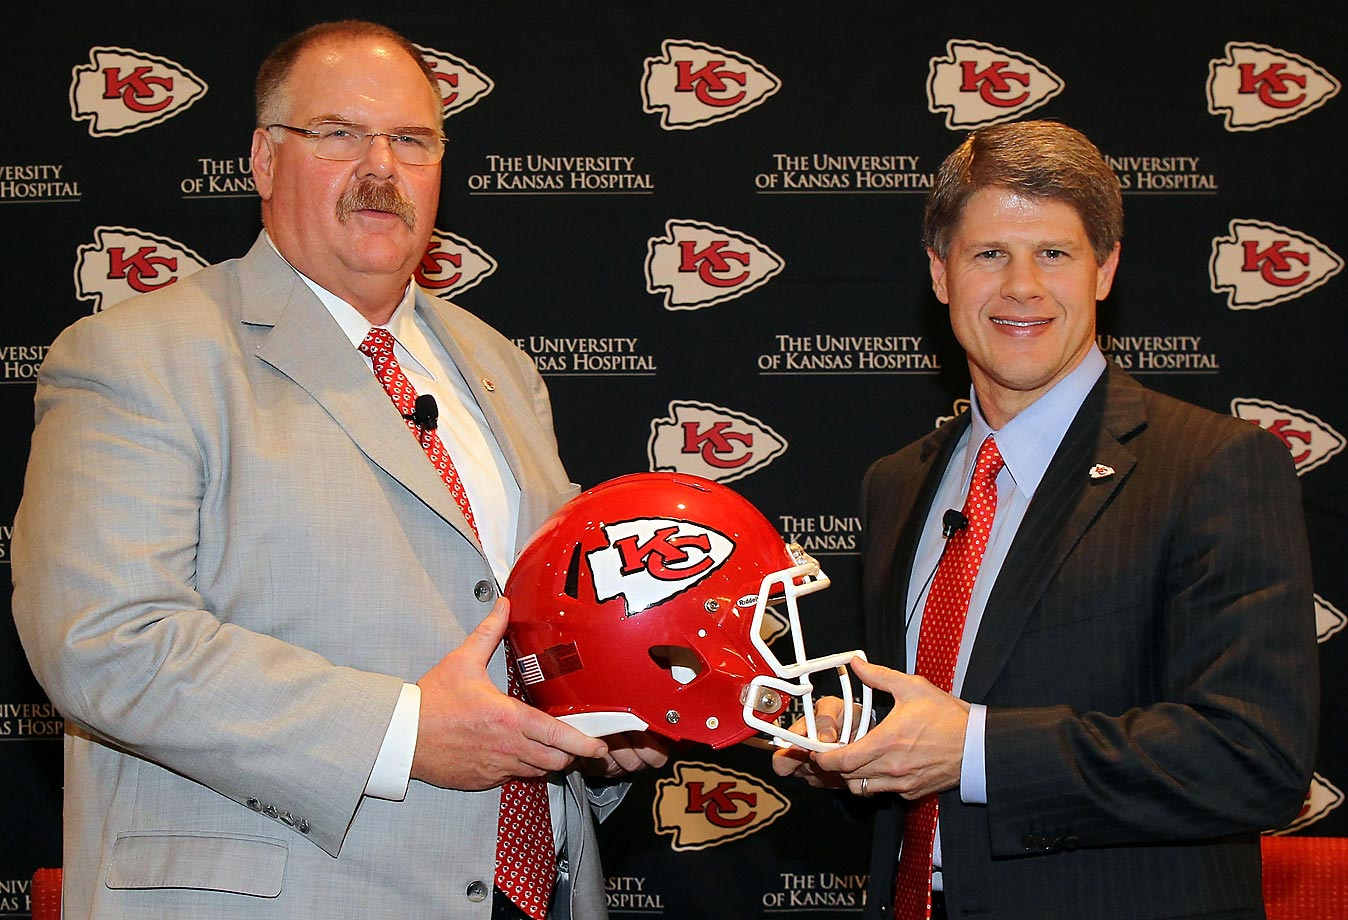 Almost all season long, Eagles fans had been calling for the organization to axe longtime head coach Andy Reid. On Dec. 31, 2012, after watching their team go 4-12, the Philadelphia fans got their wish, and Reid was fired. Four days later, the 54-year-old already had a new destination -- Kansas City.